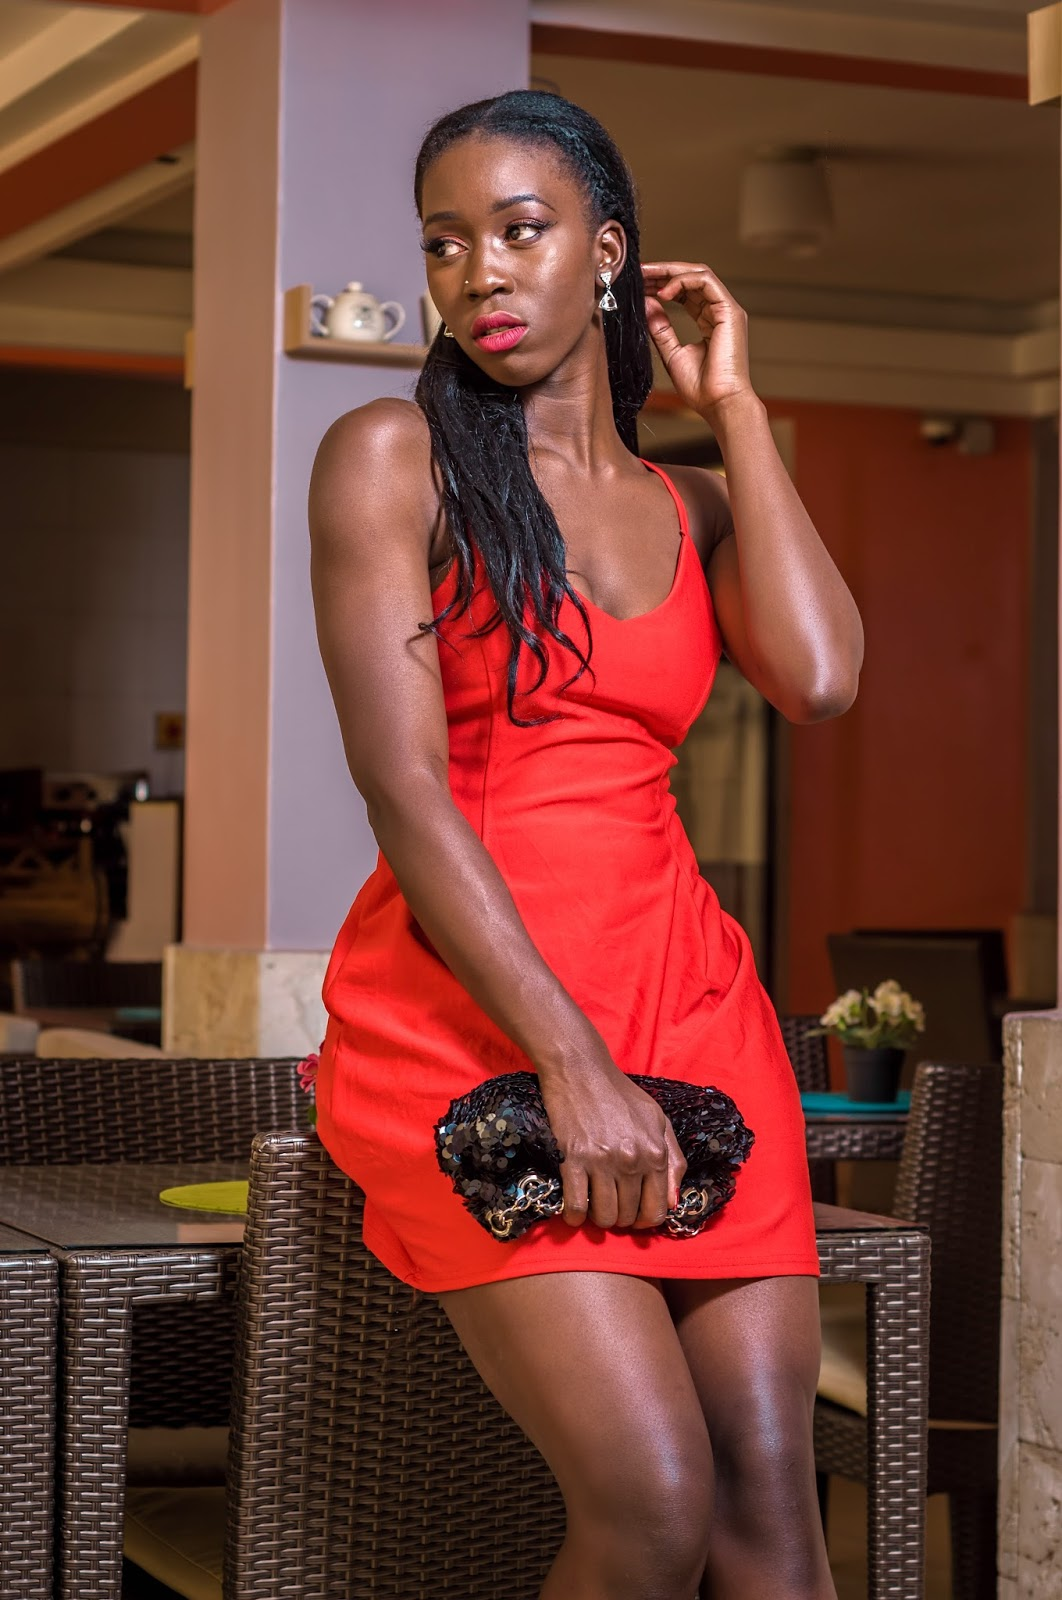 slip dress, what is a slip dress, style with Ezil, little red dress, broad shoulder women, how to style a slip dress, Kenyan fashion blogger